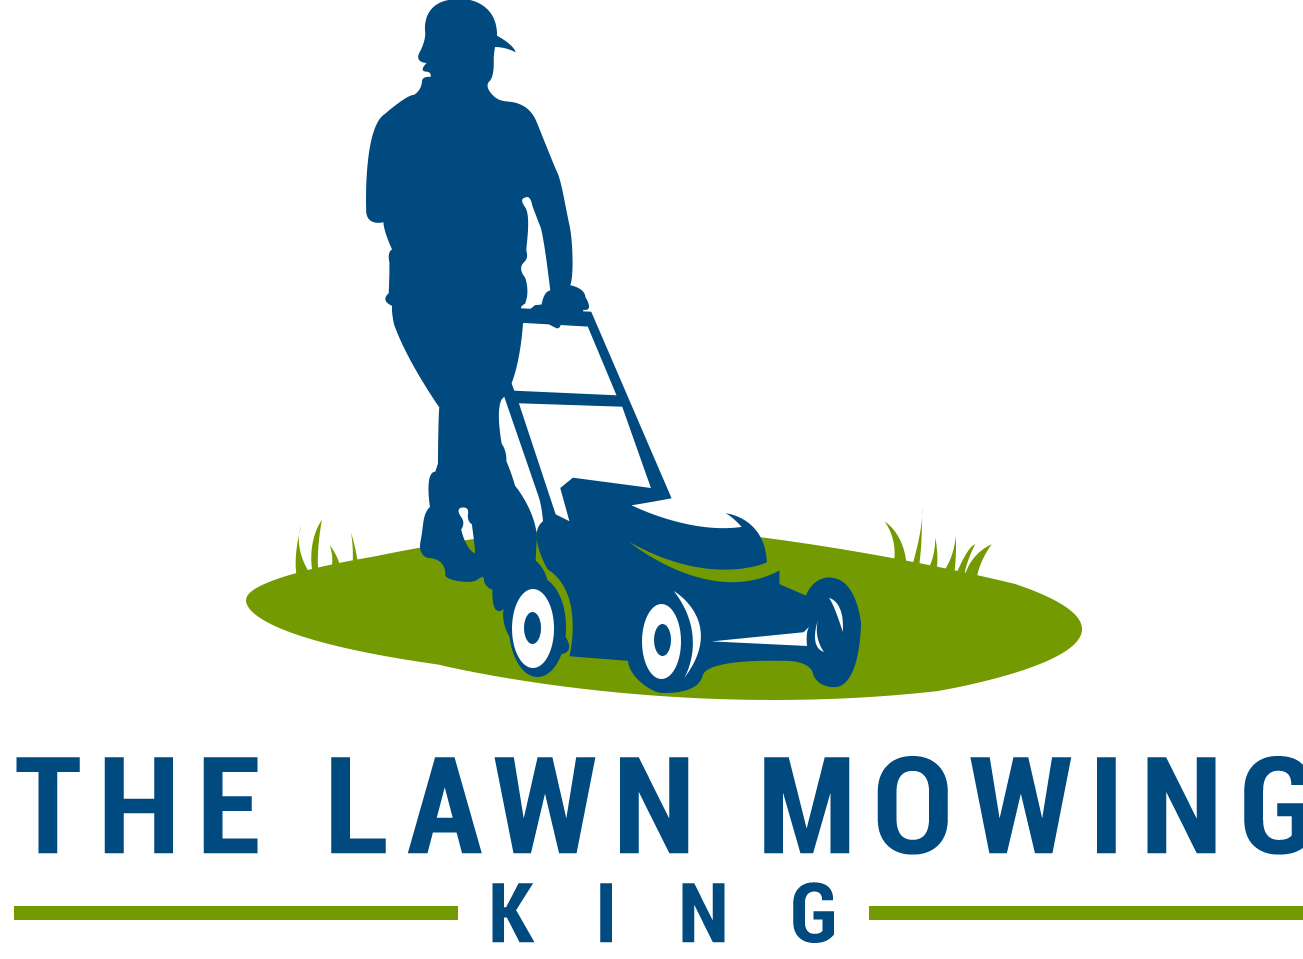 The Lawn Mowing King